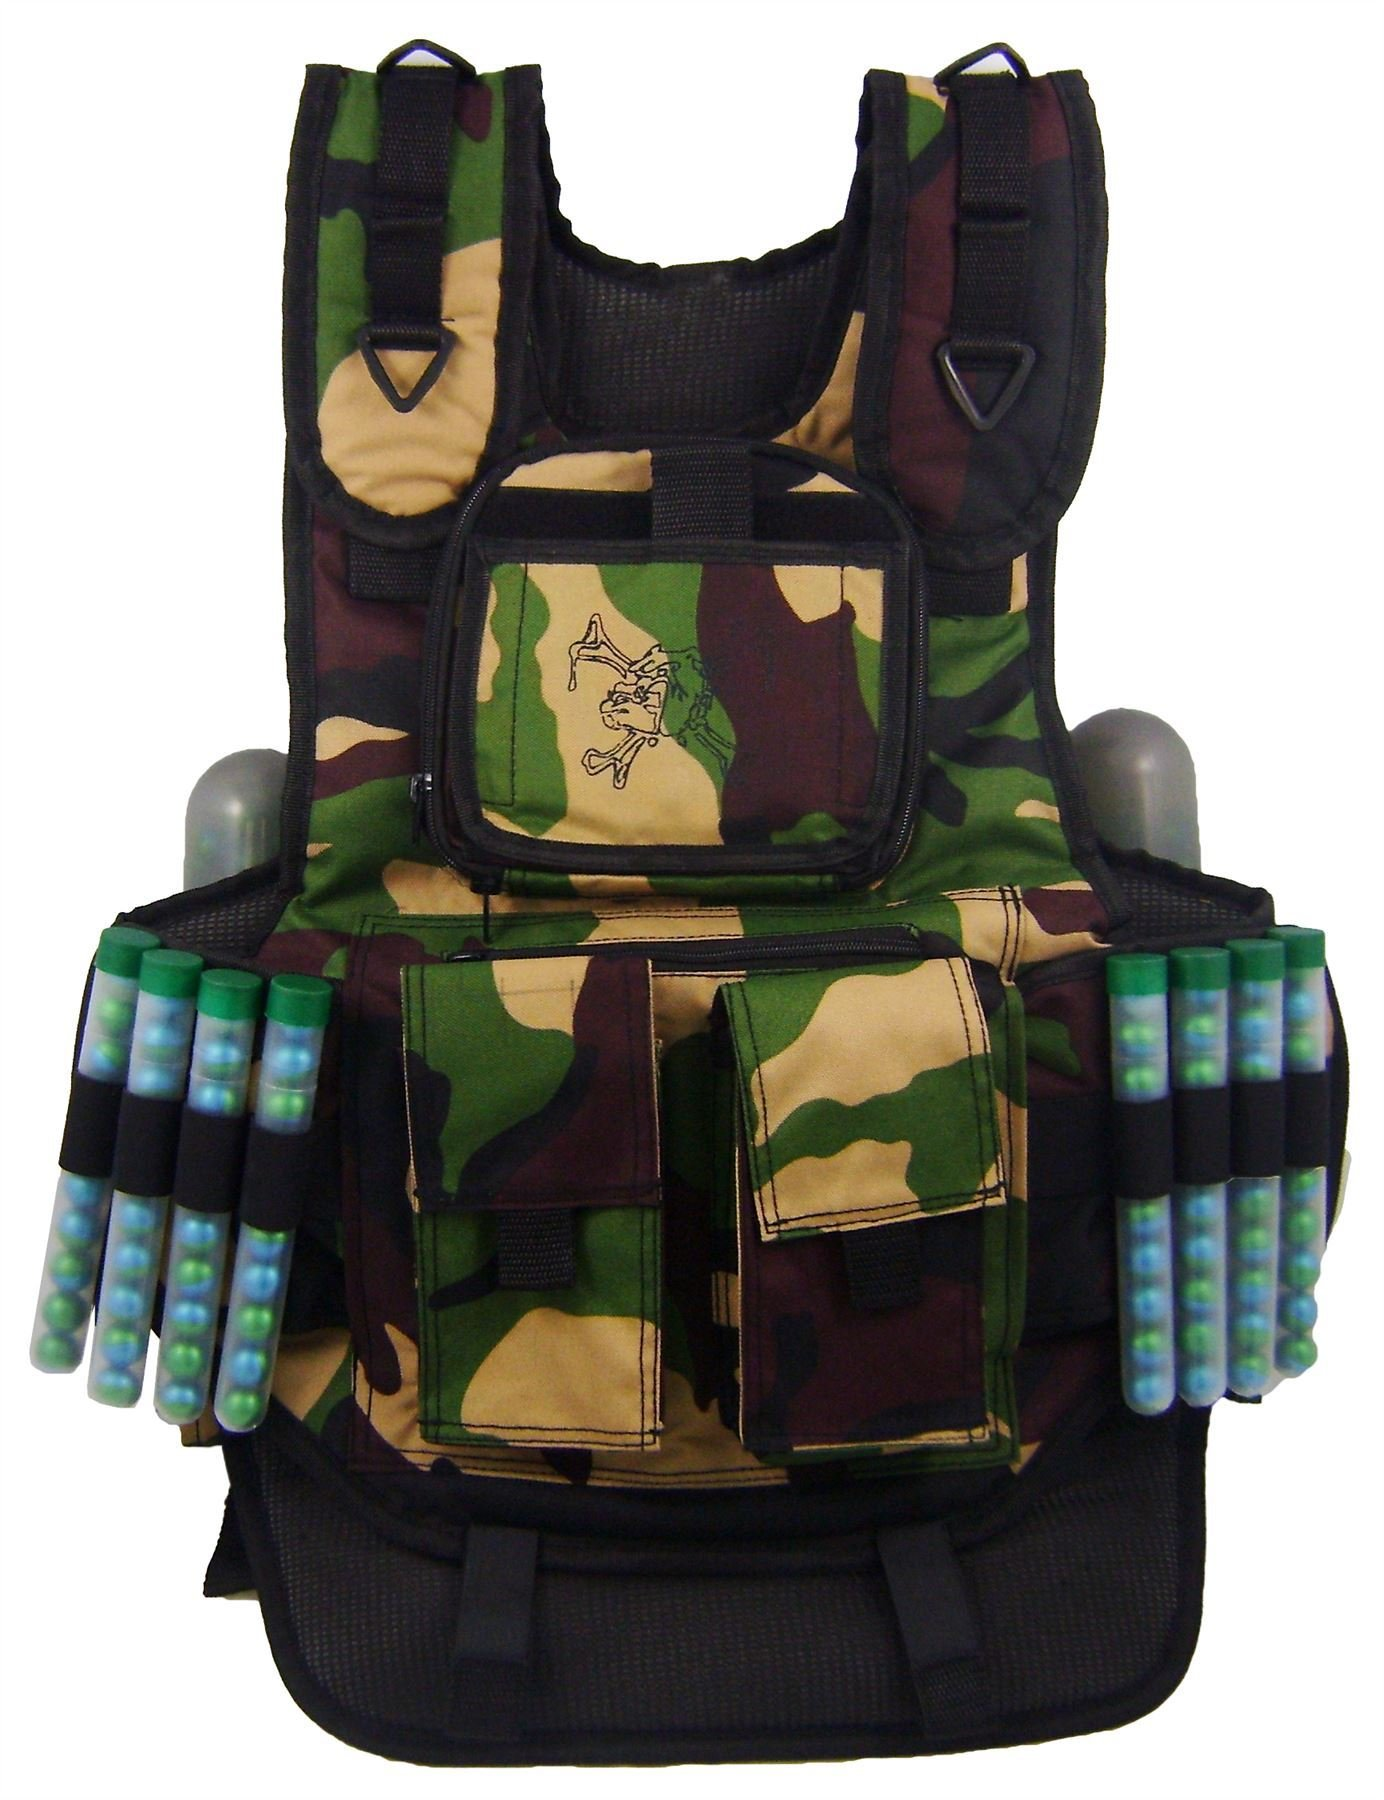 Maddog Sports Tactical 6-Pod Paintball Harness Vest - Camo by MAddog